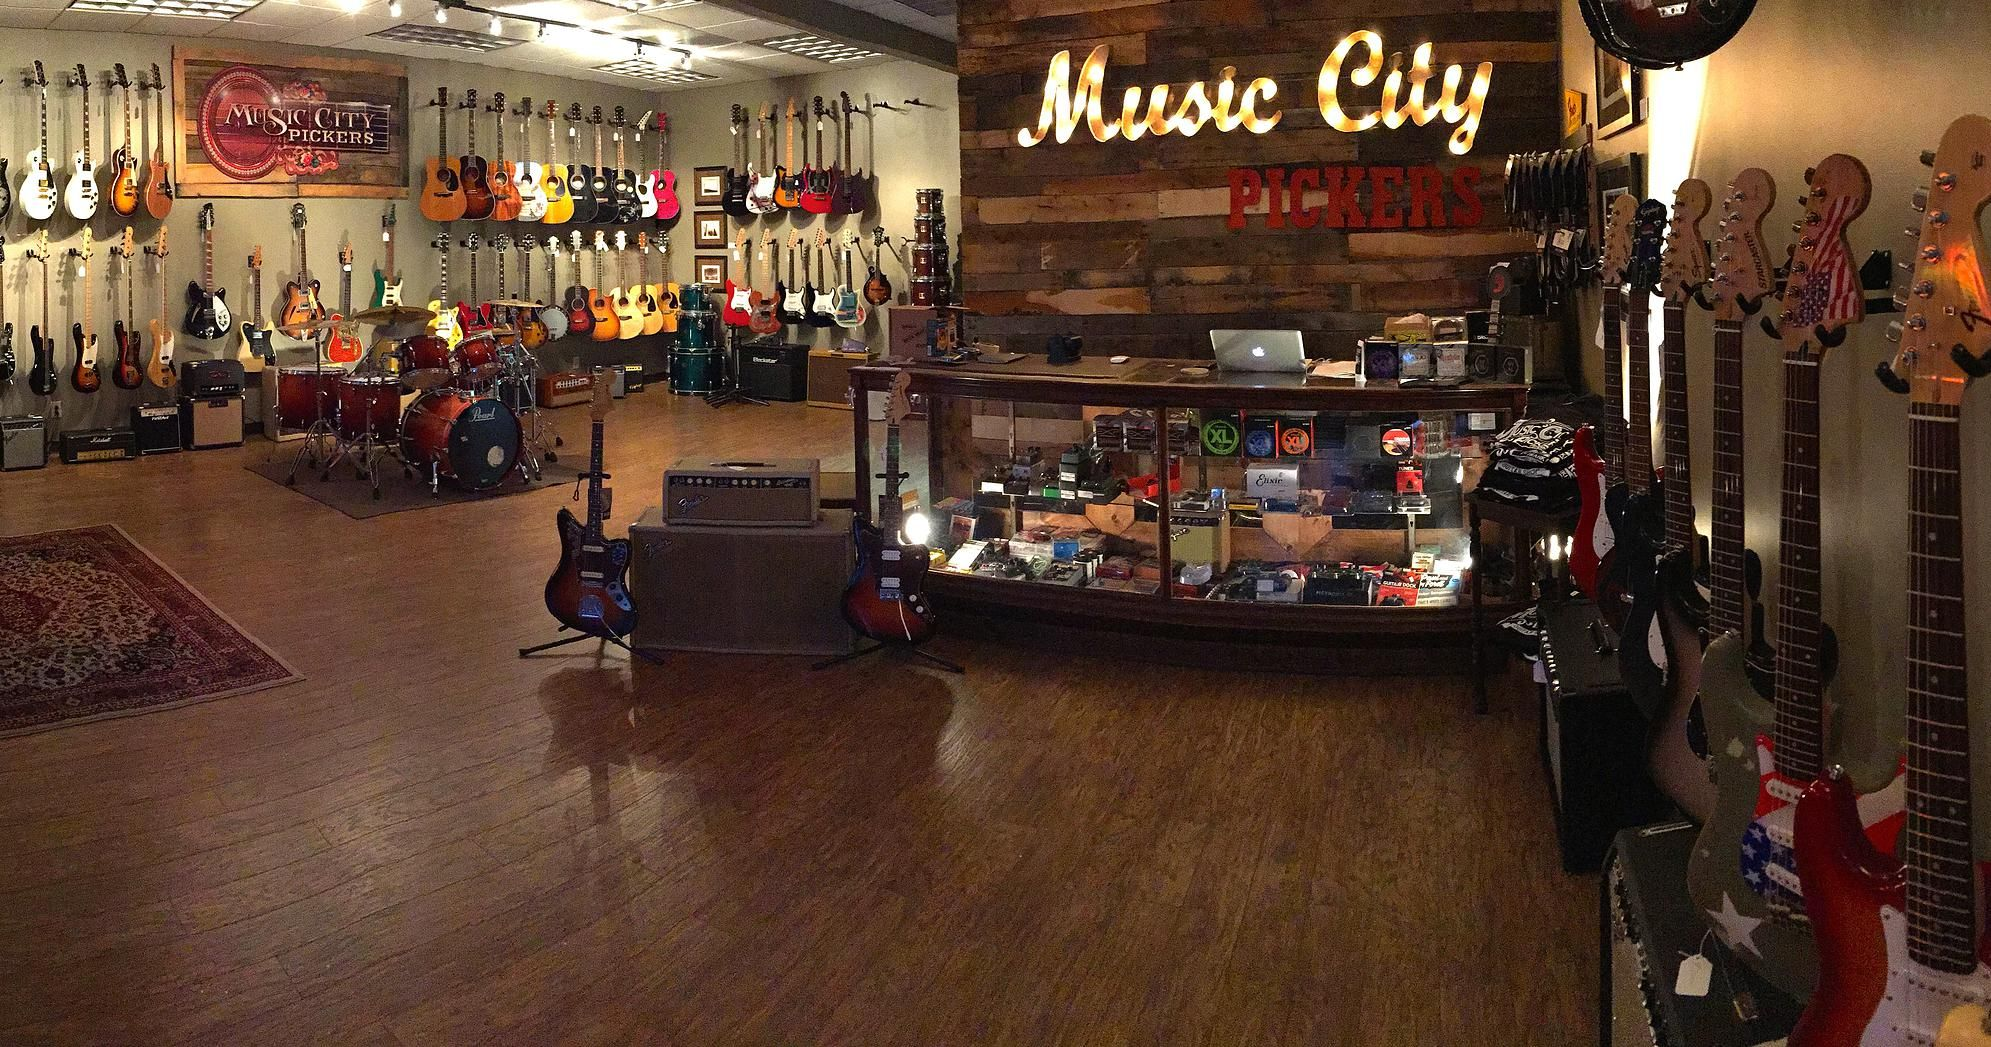 Music City Pickers Vintage Guitars Used Musical Instruments Guitar Store Music Store Interior Music Store Design